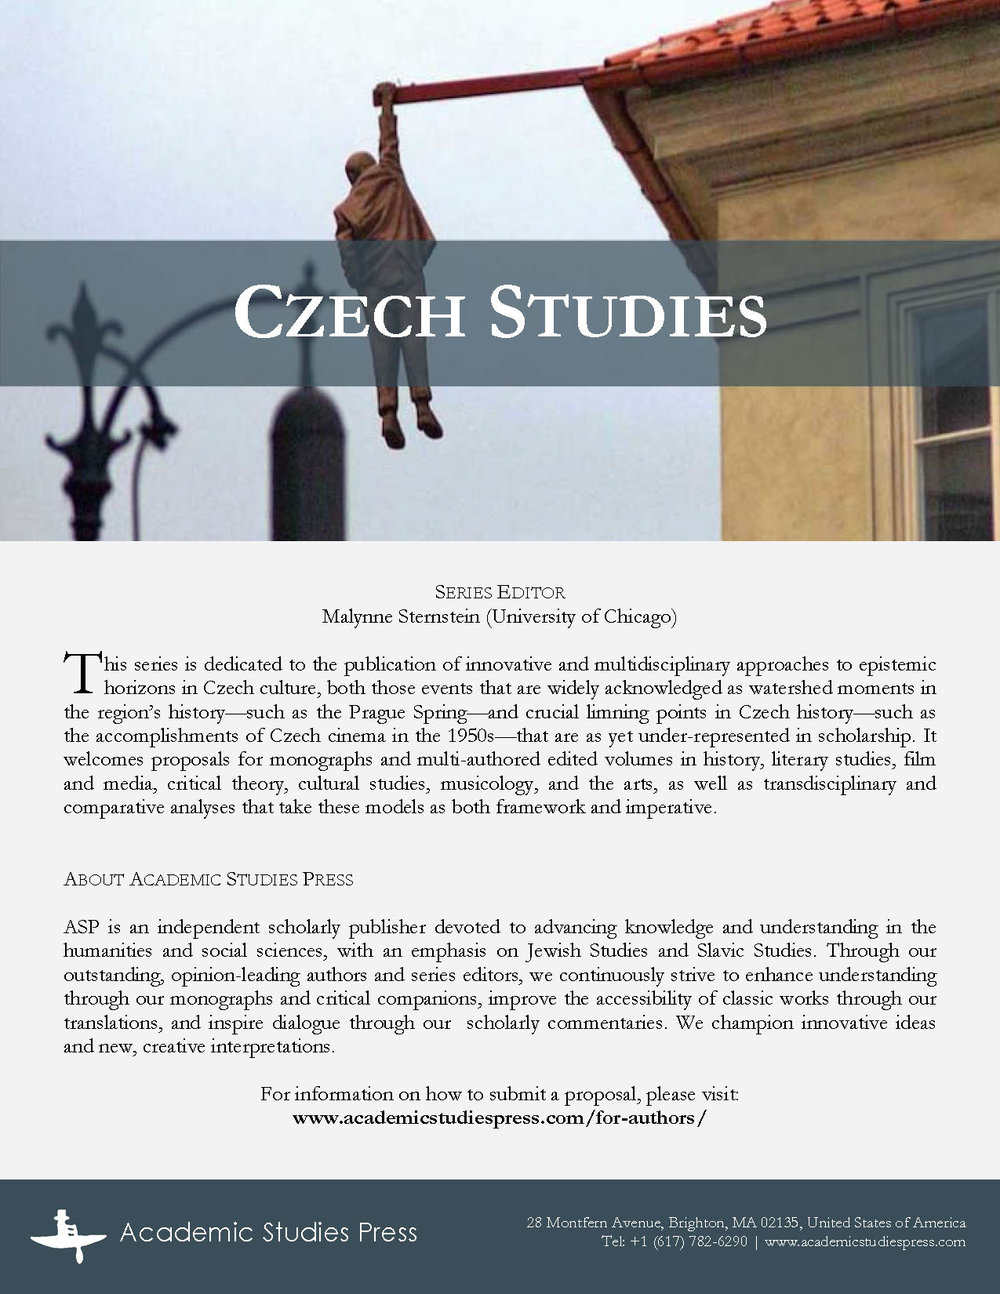 Czech Studies Flyer.jpg